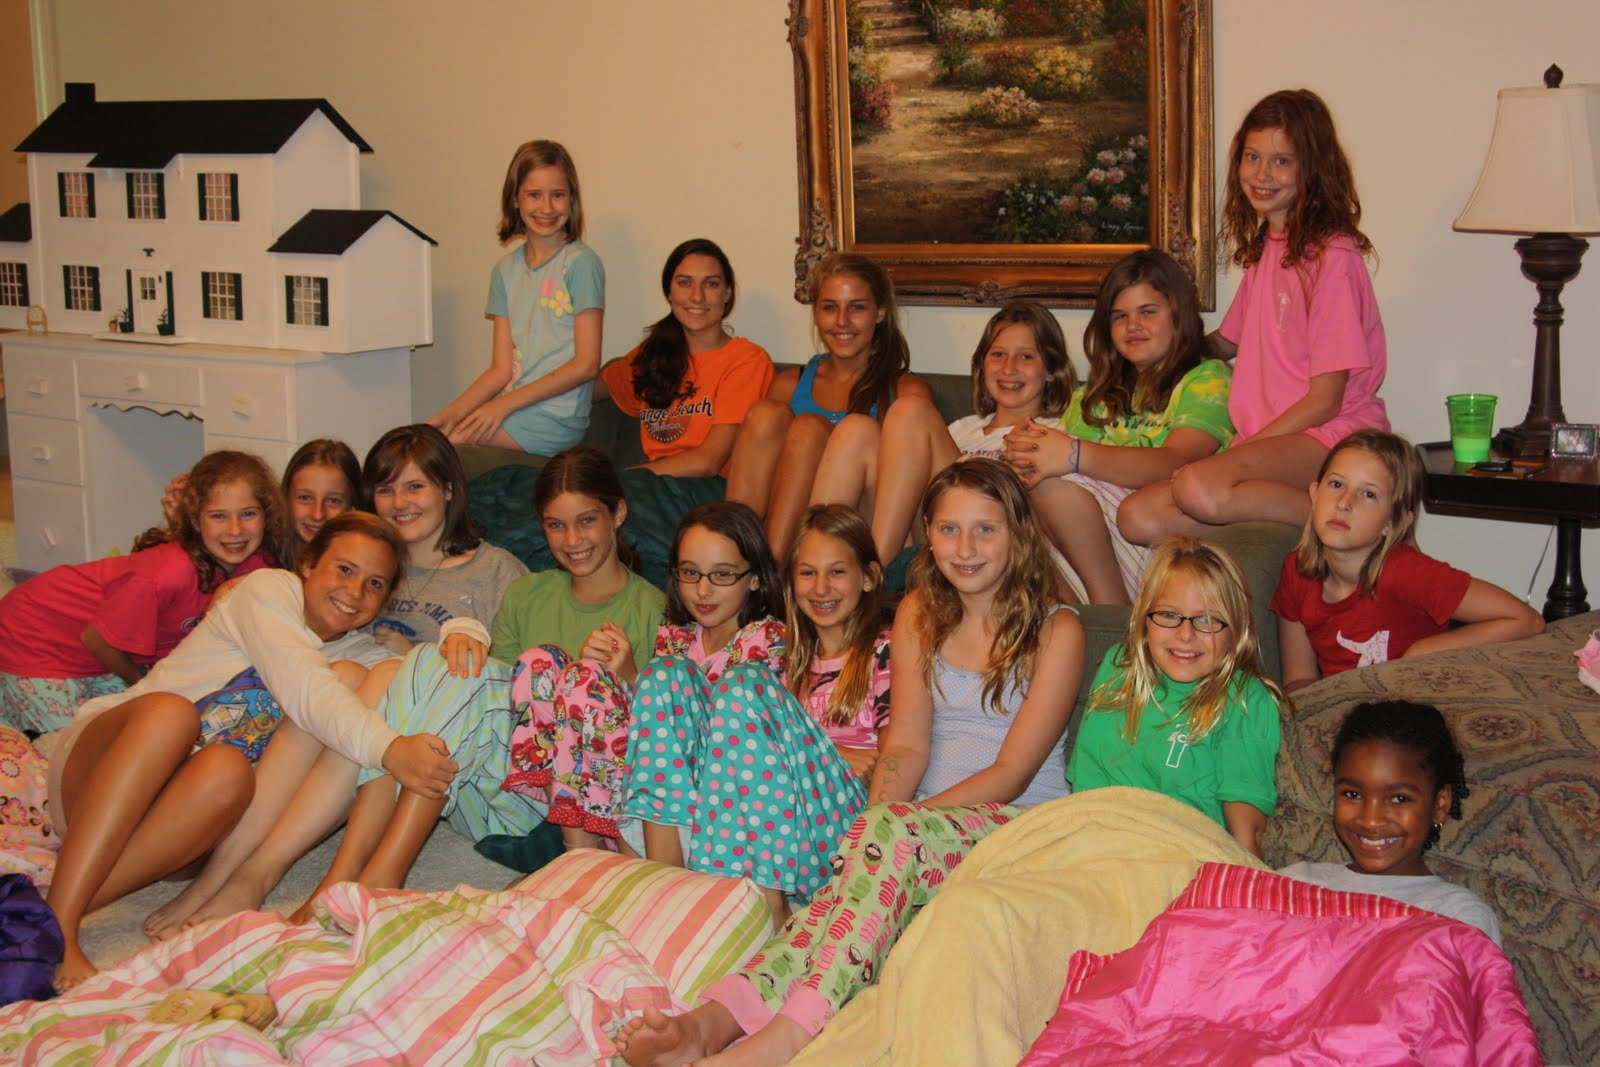 sleep-over-girls-naked-how-to-group-sex